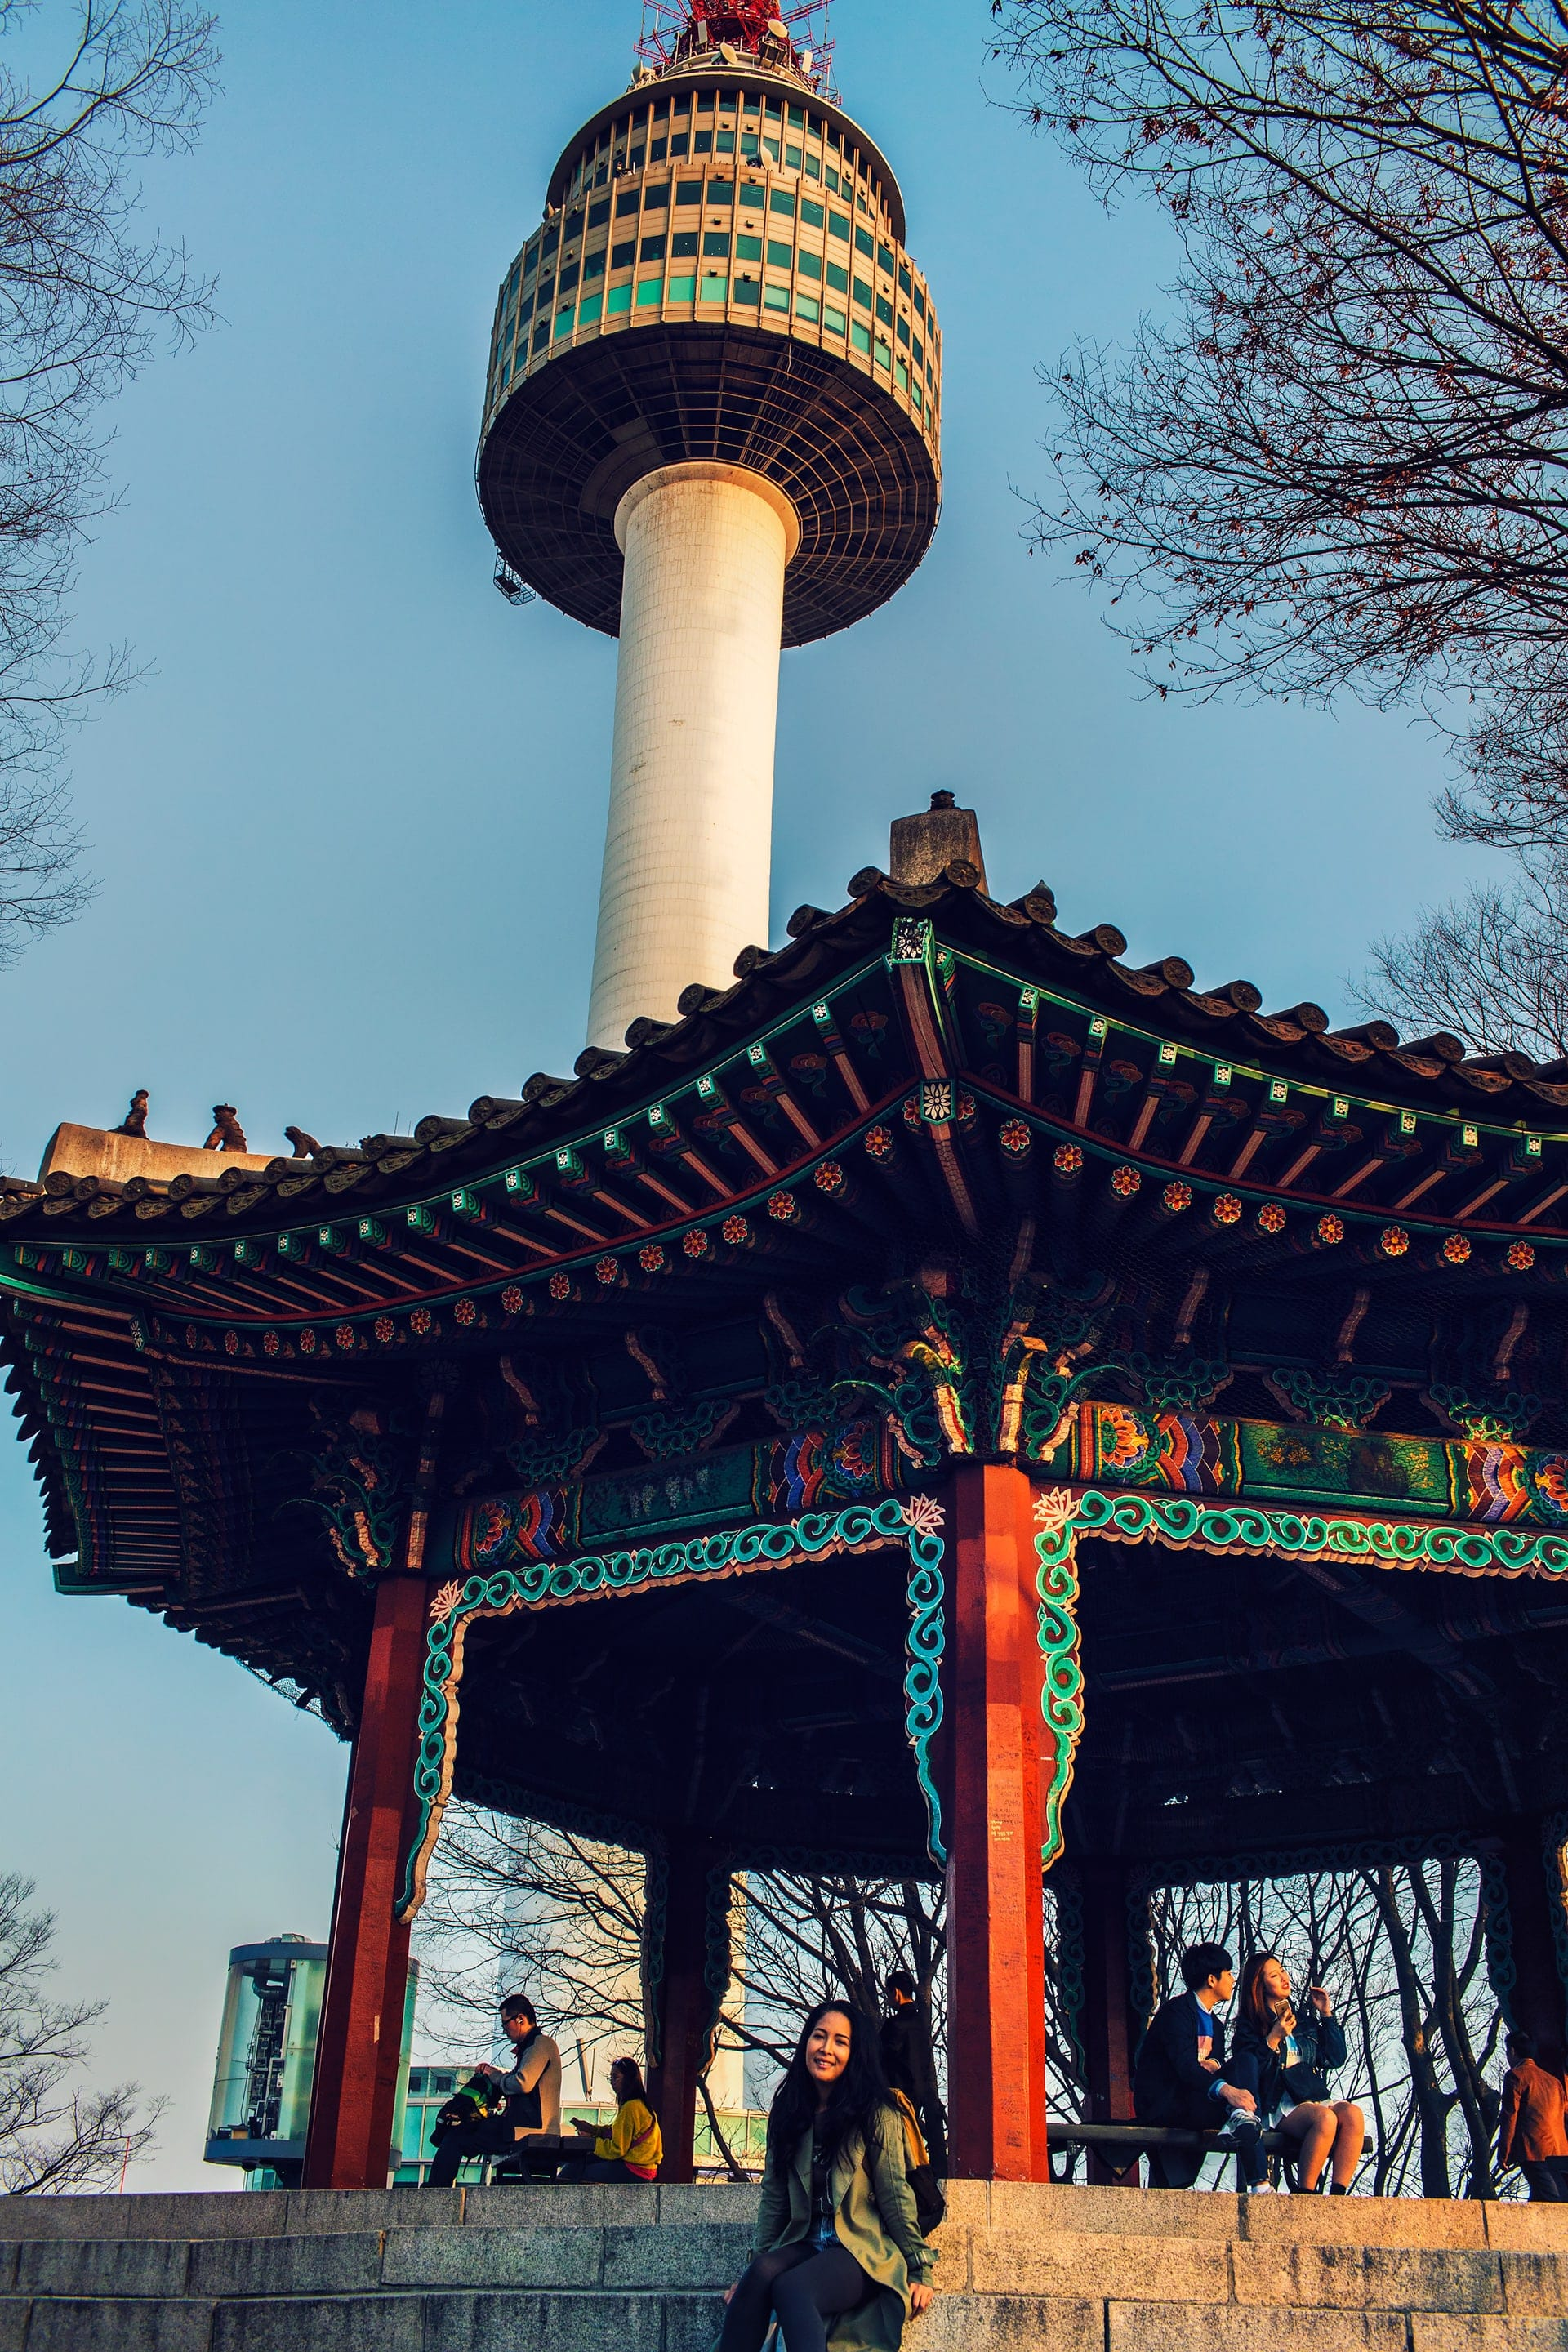 People relaxing under the pavilion in front of N Seoul Tower at Namsan Park in Seoul South Korea